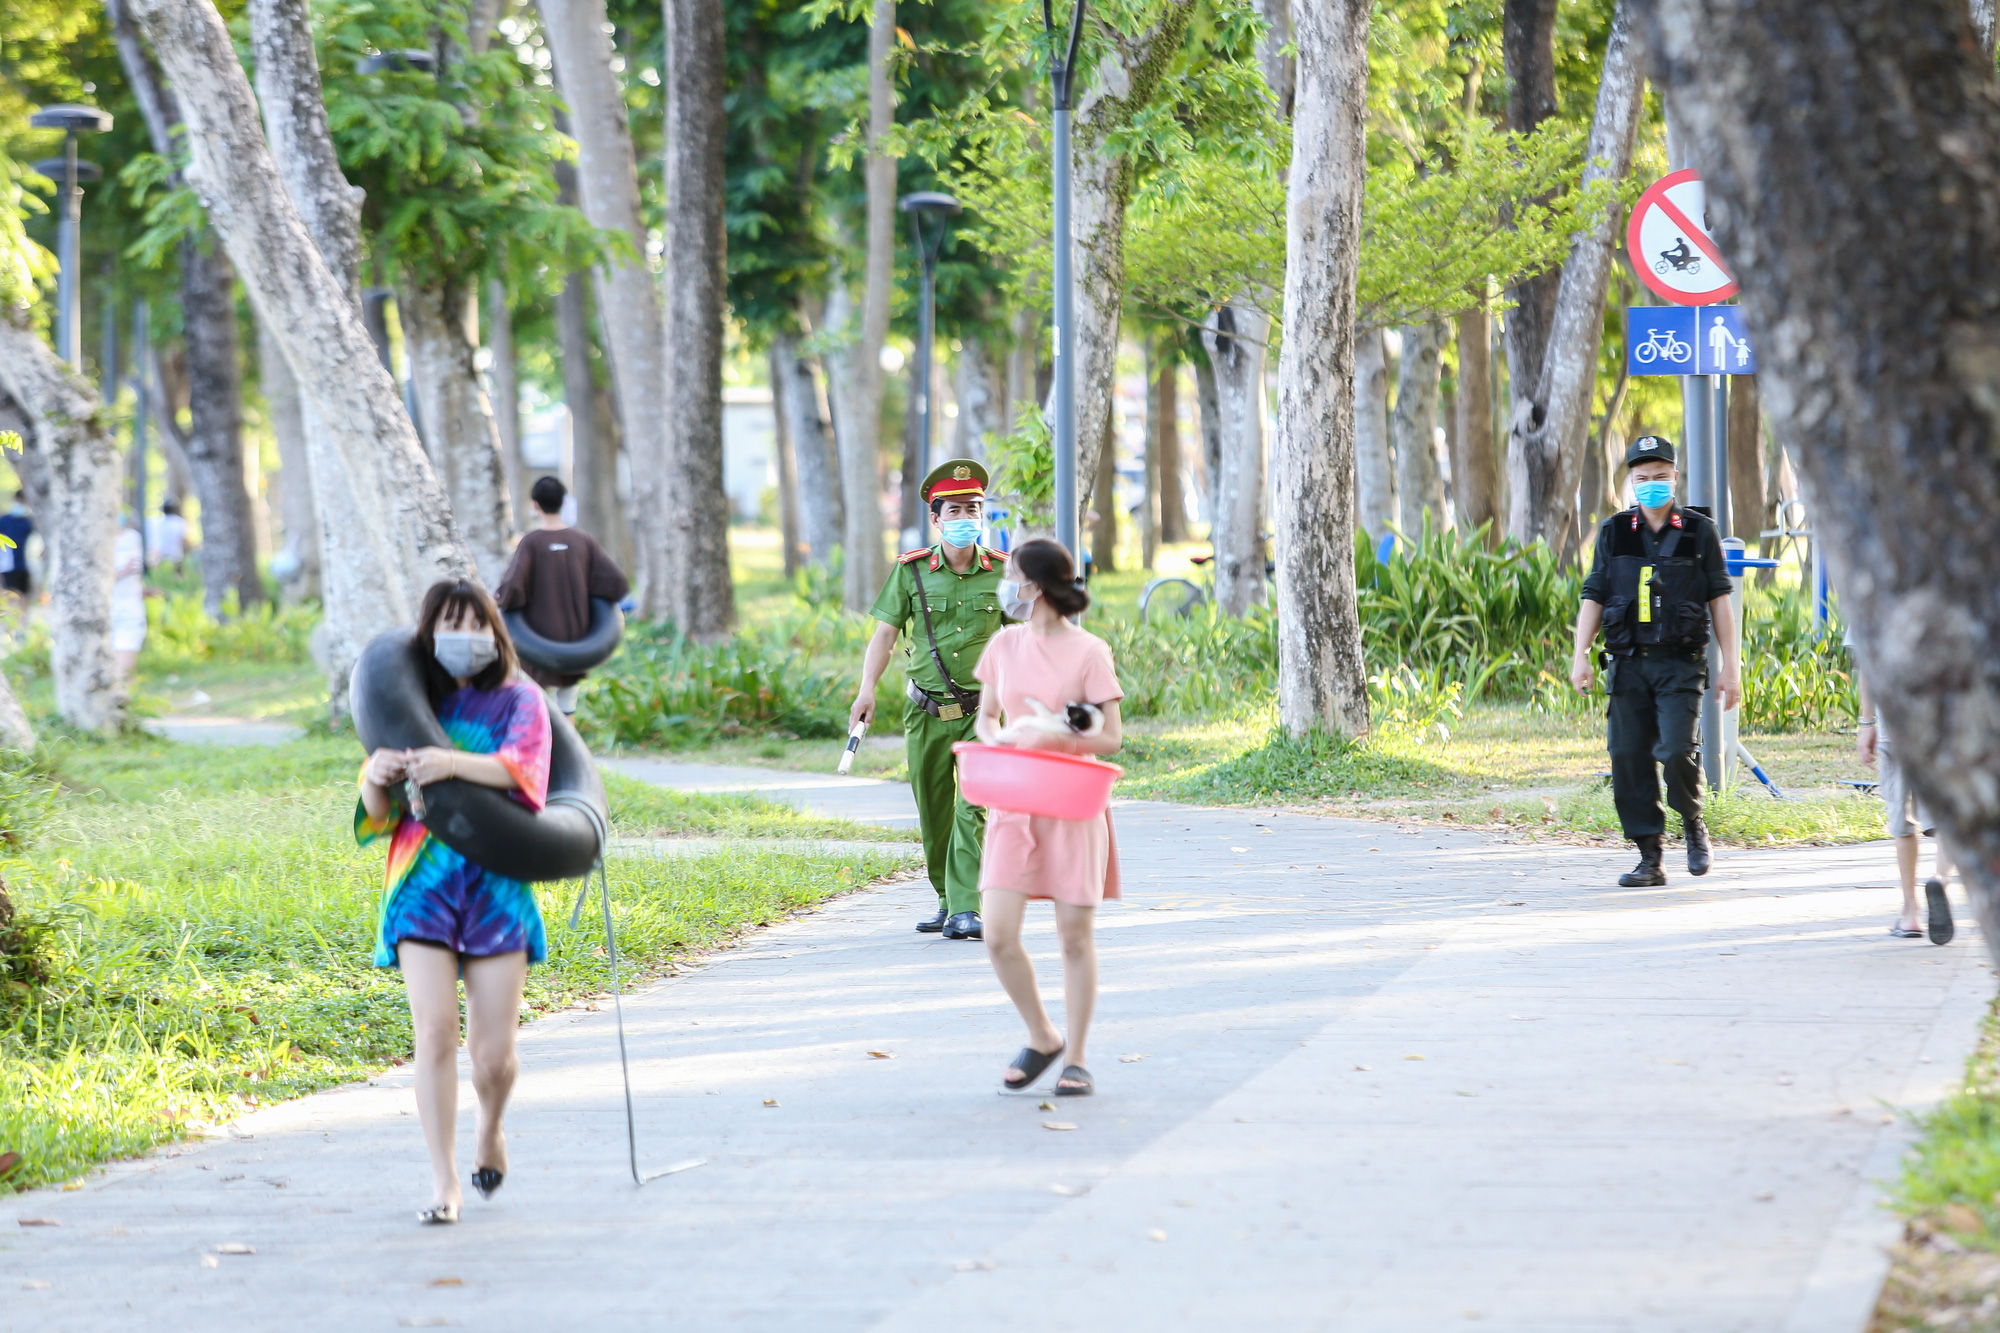 Officers patrol on the Huong River bank in Thua Thien - Hue Province, Vietnam. Photo: Phuoc Tuan / Tuoi Tre